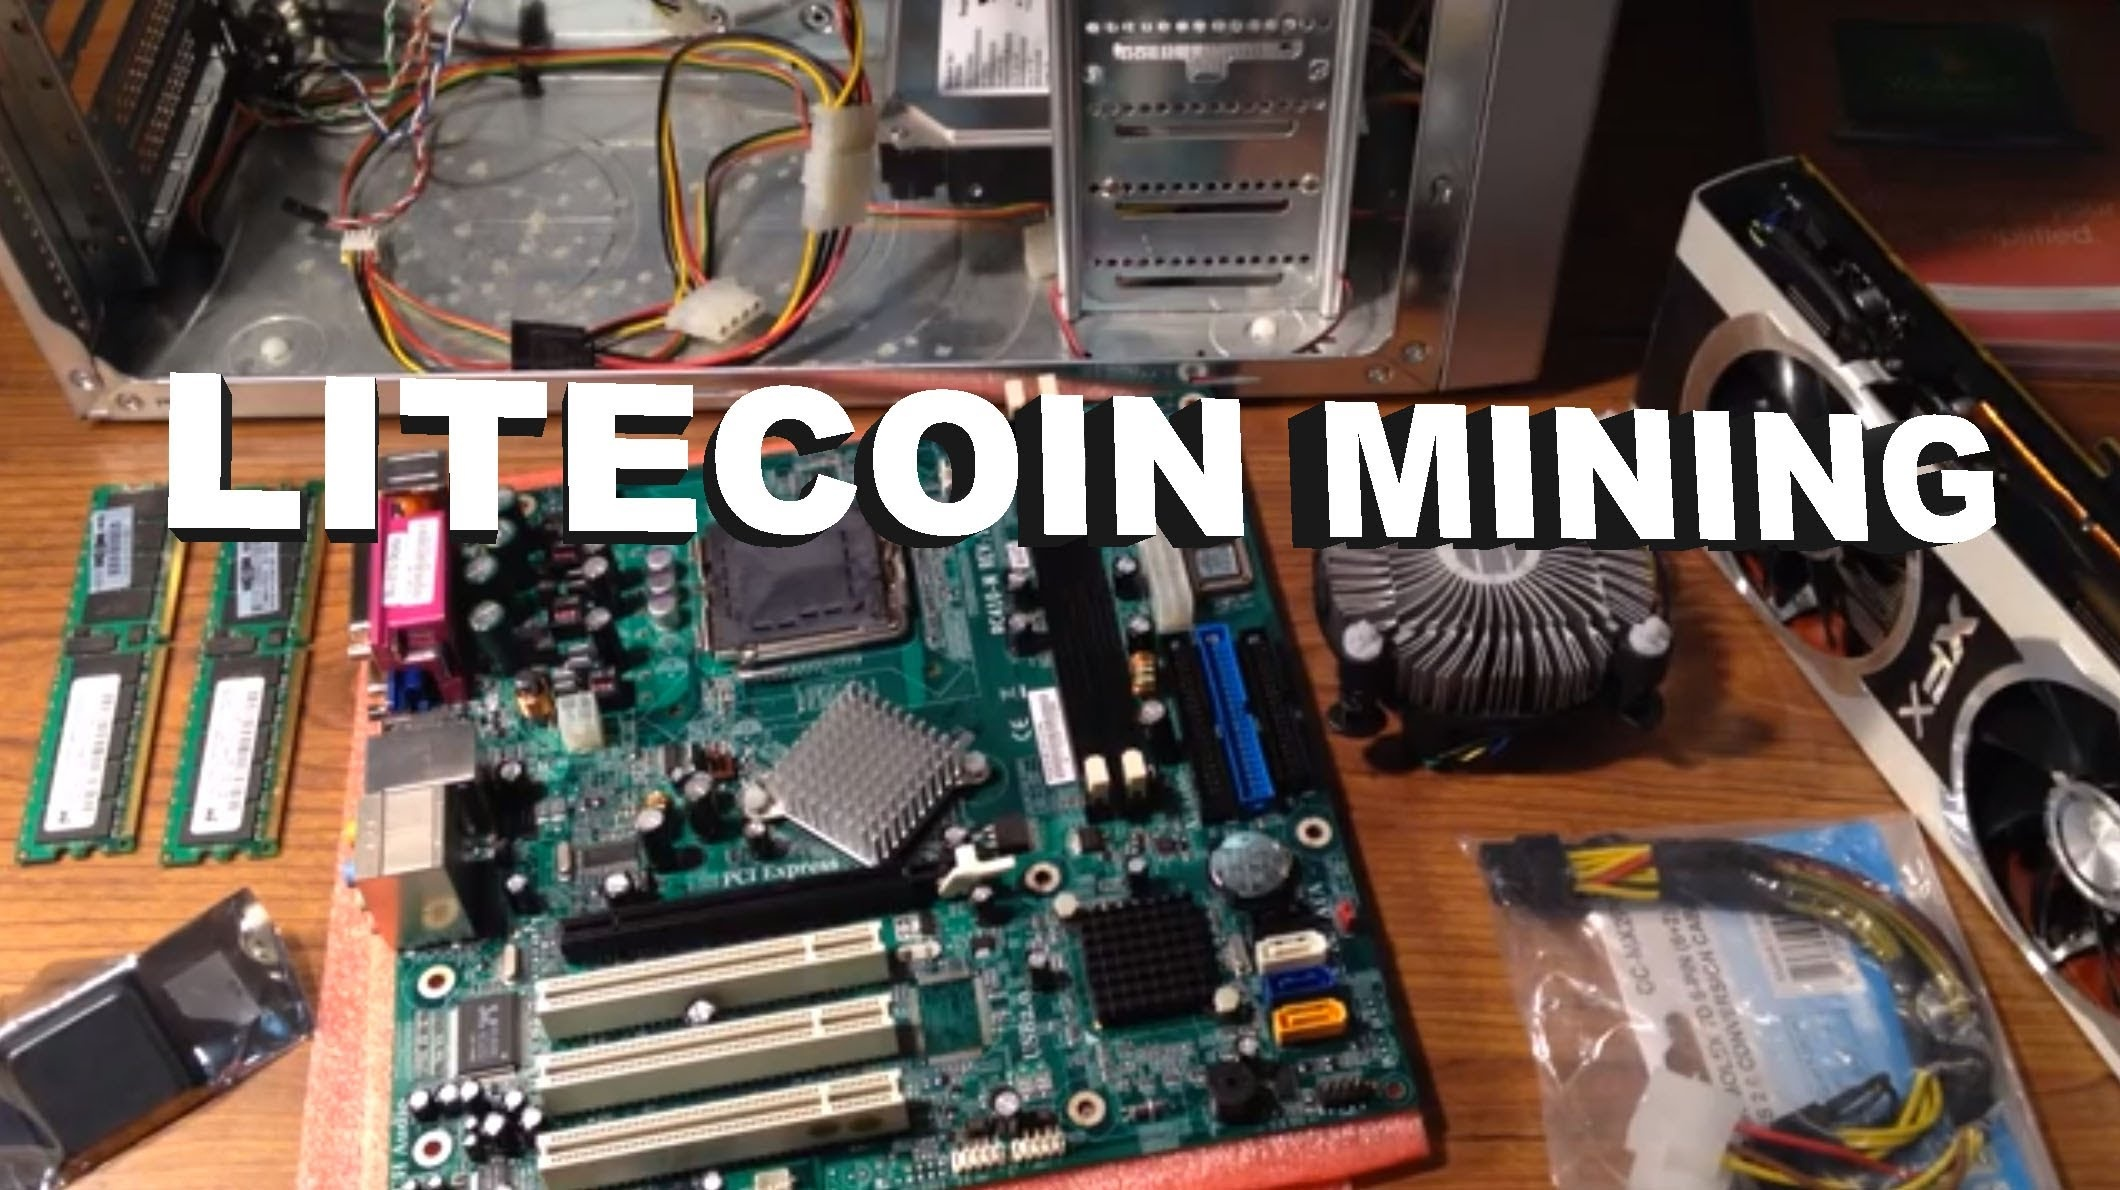 How does one build a Litecoin Mining rig? - Quora